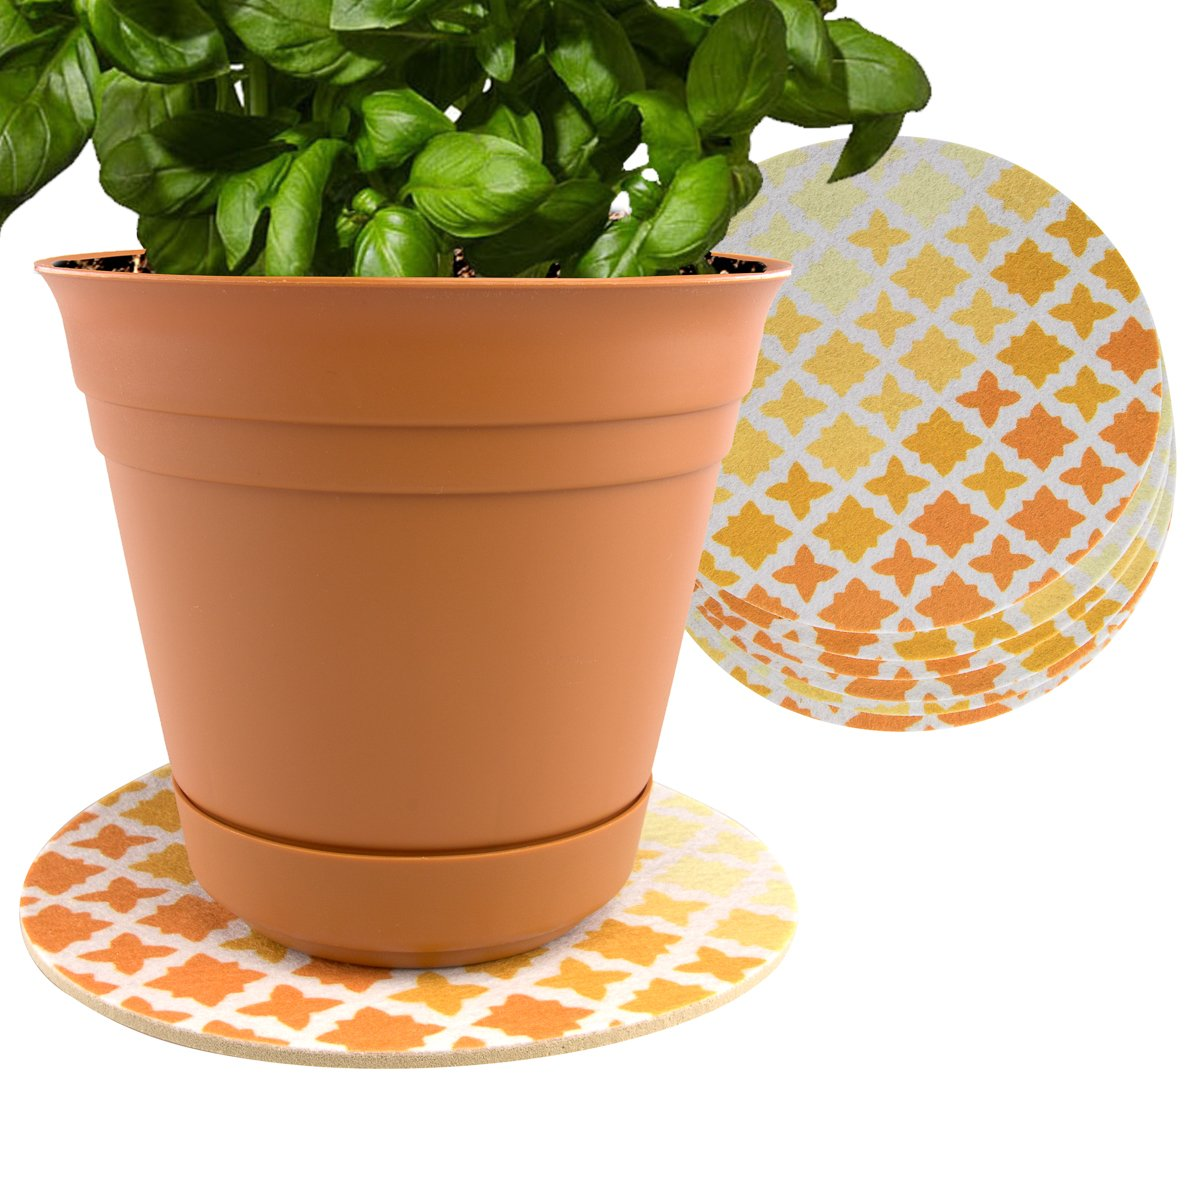 Plastec 6-Pack Indoor Plant Mat for Plastic or Ceramic Flower Pot Trivet Floor Planter Coaster Set by Plastec